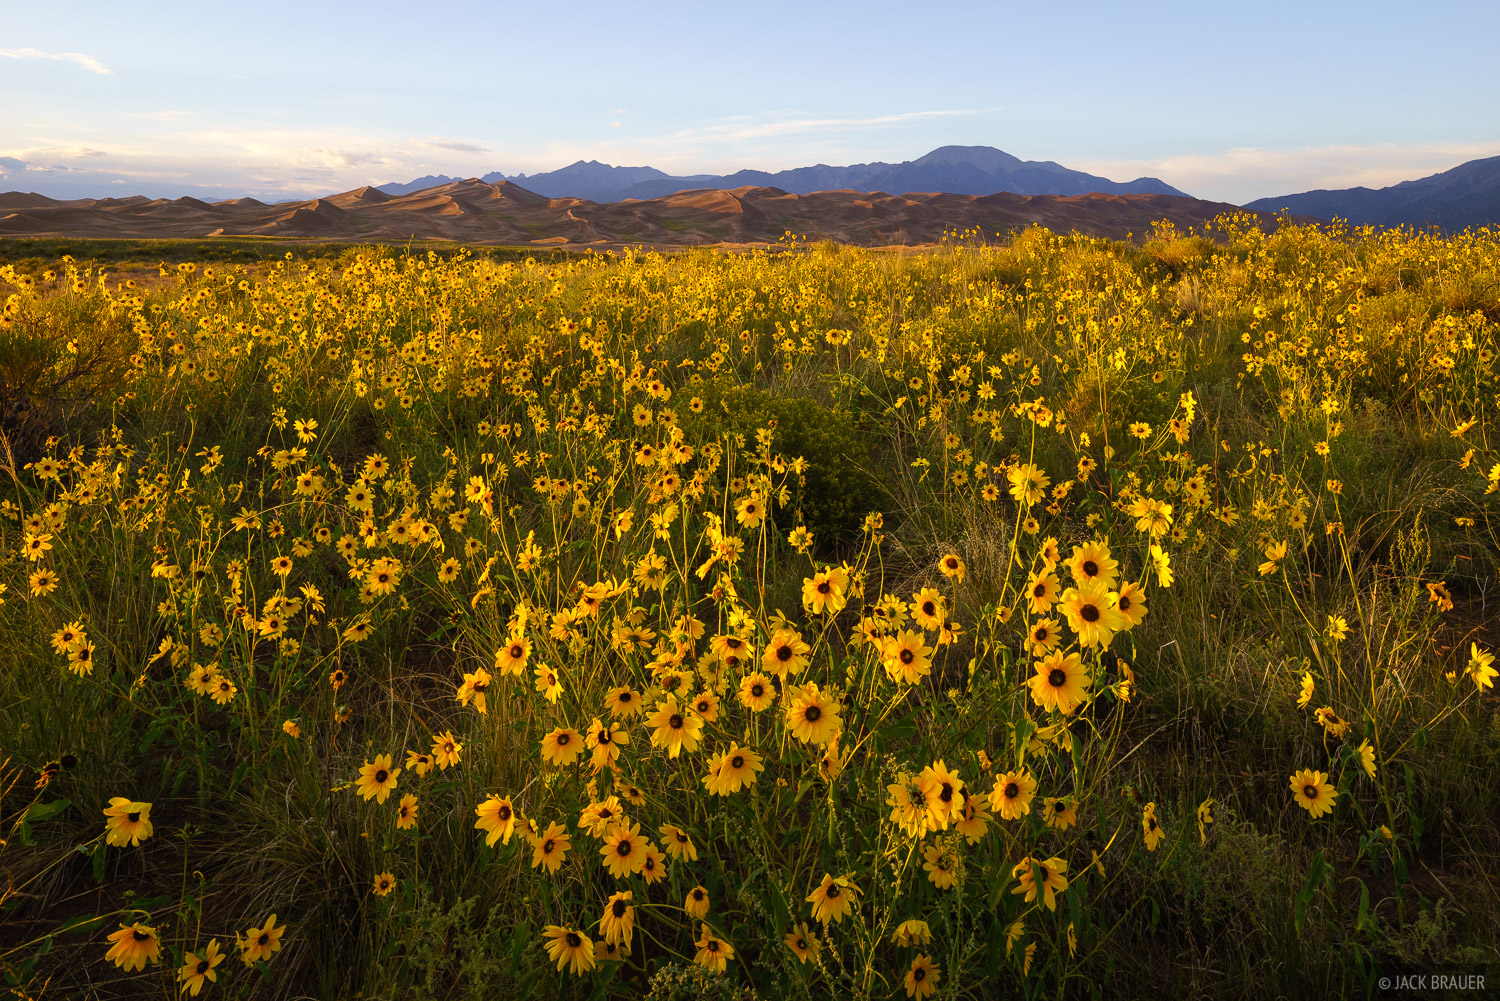 Praire sunflowers at sunset next to the Great Sand Dunes.